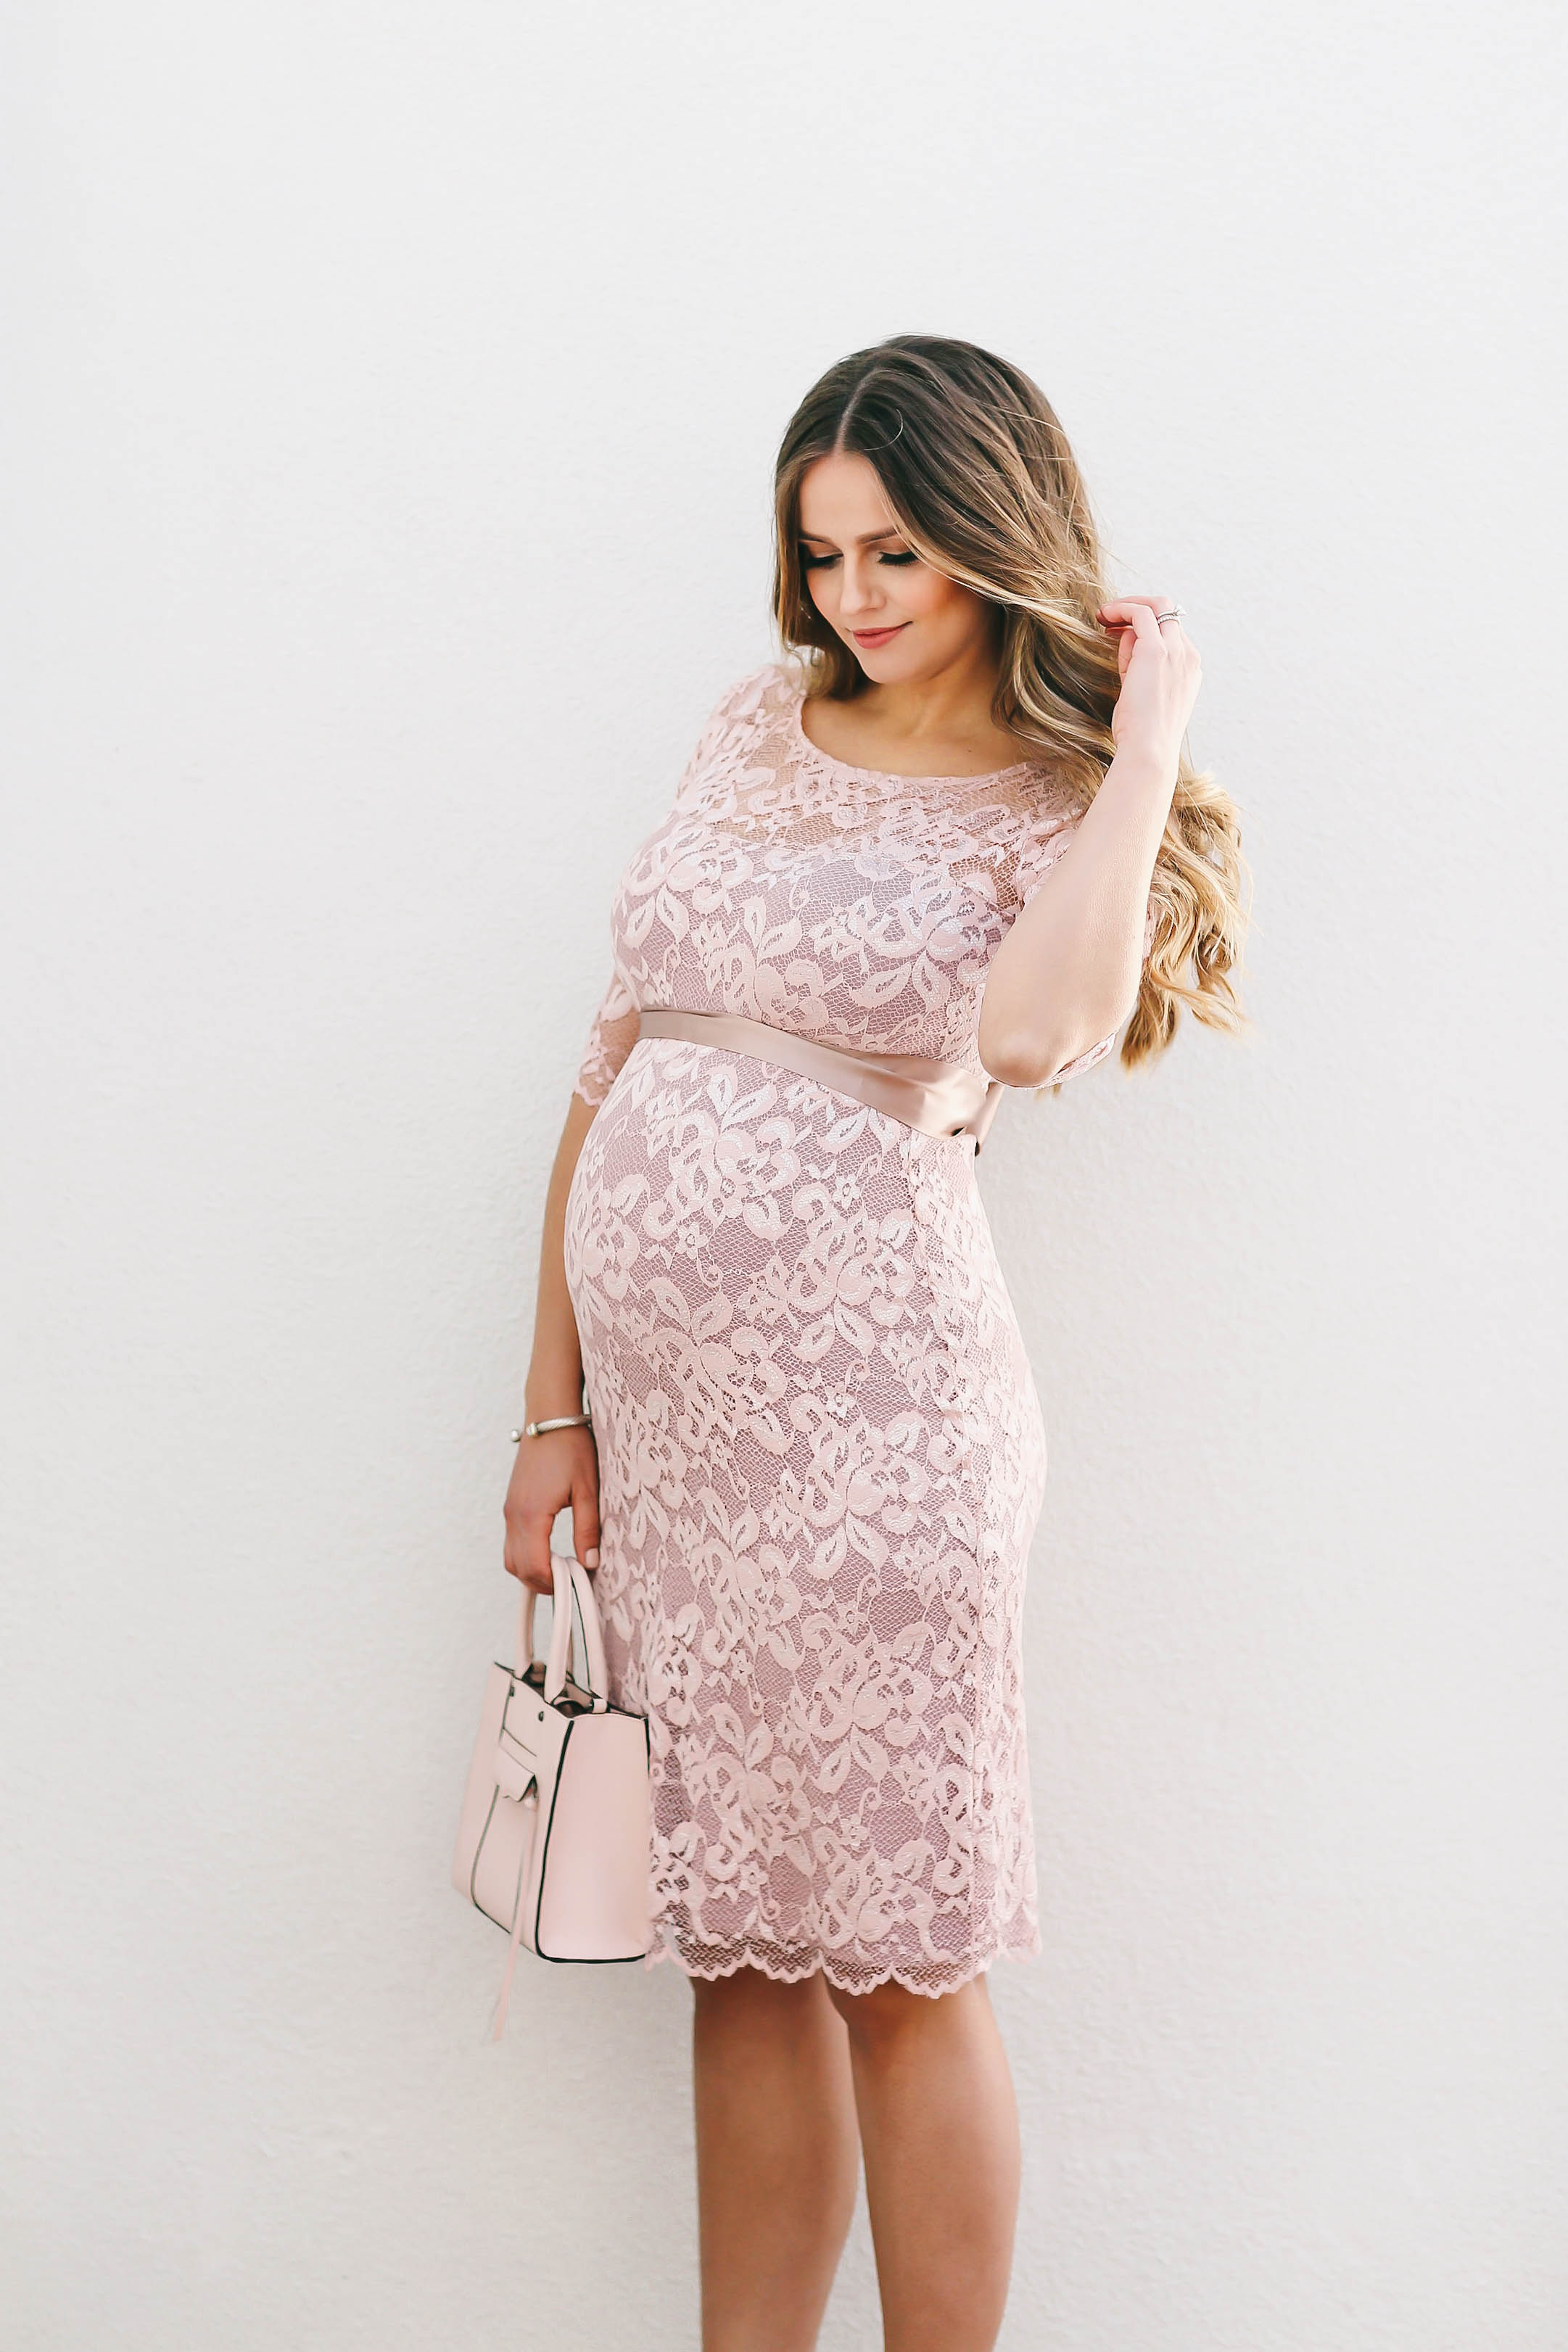 Pink maternity dresses for baby shower images braidsmaid dress pink maternity dresses for baby shower gallery braidsmaid dress pink maternity dresses for baby shower gallery ombrellifo Images